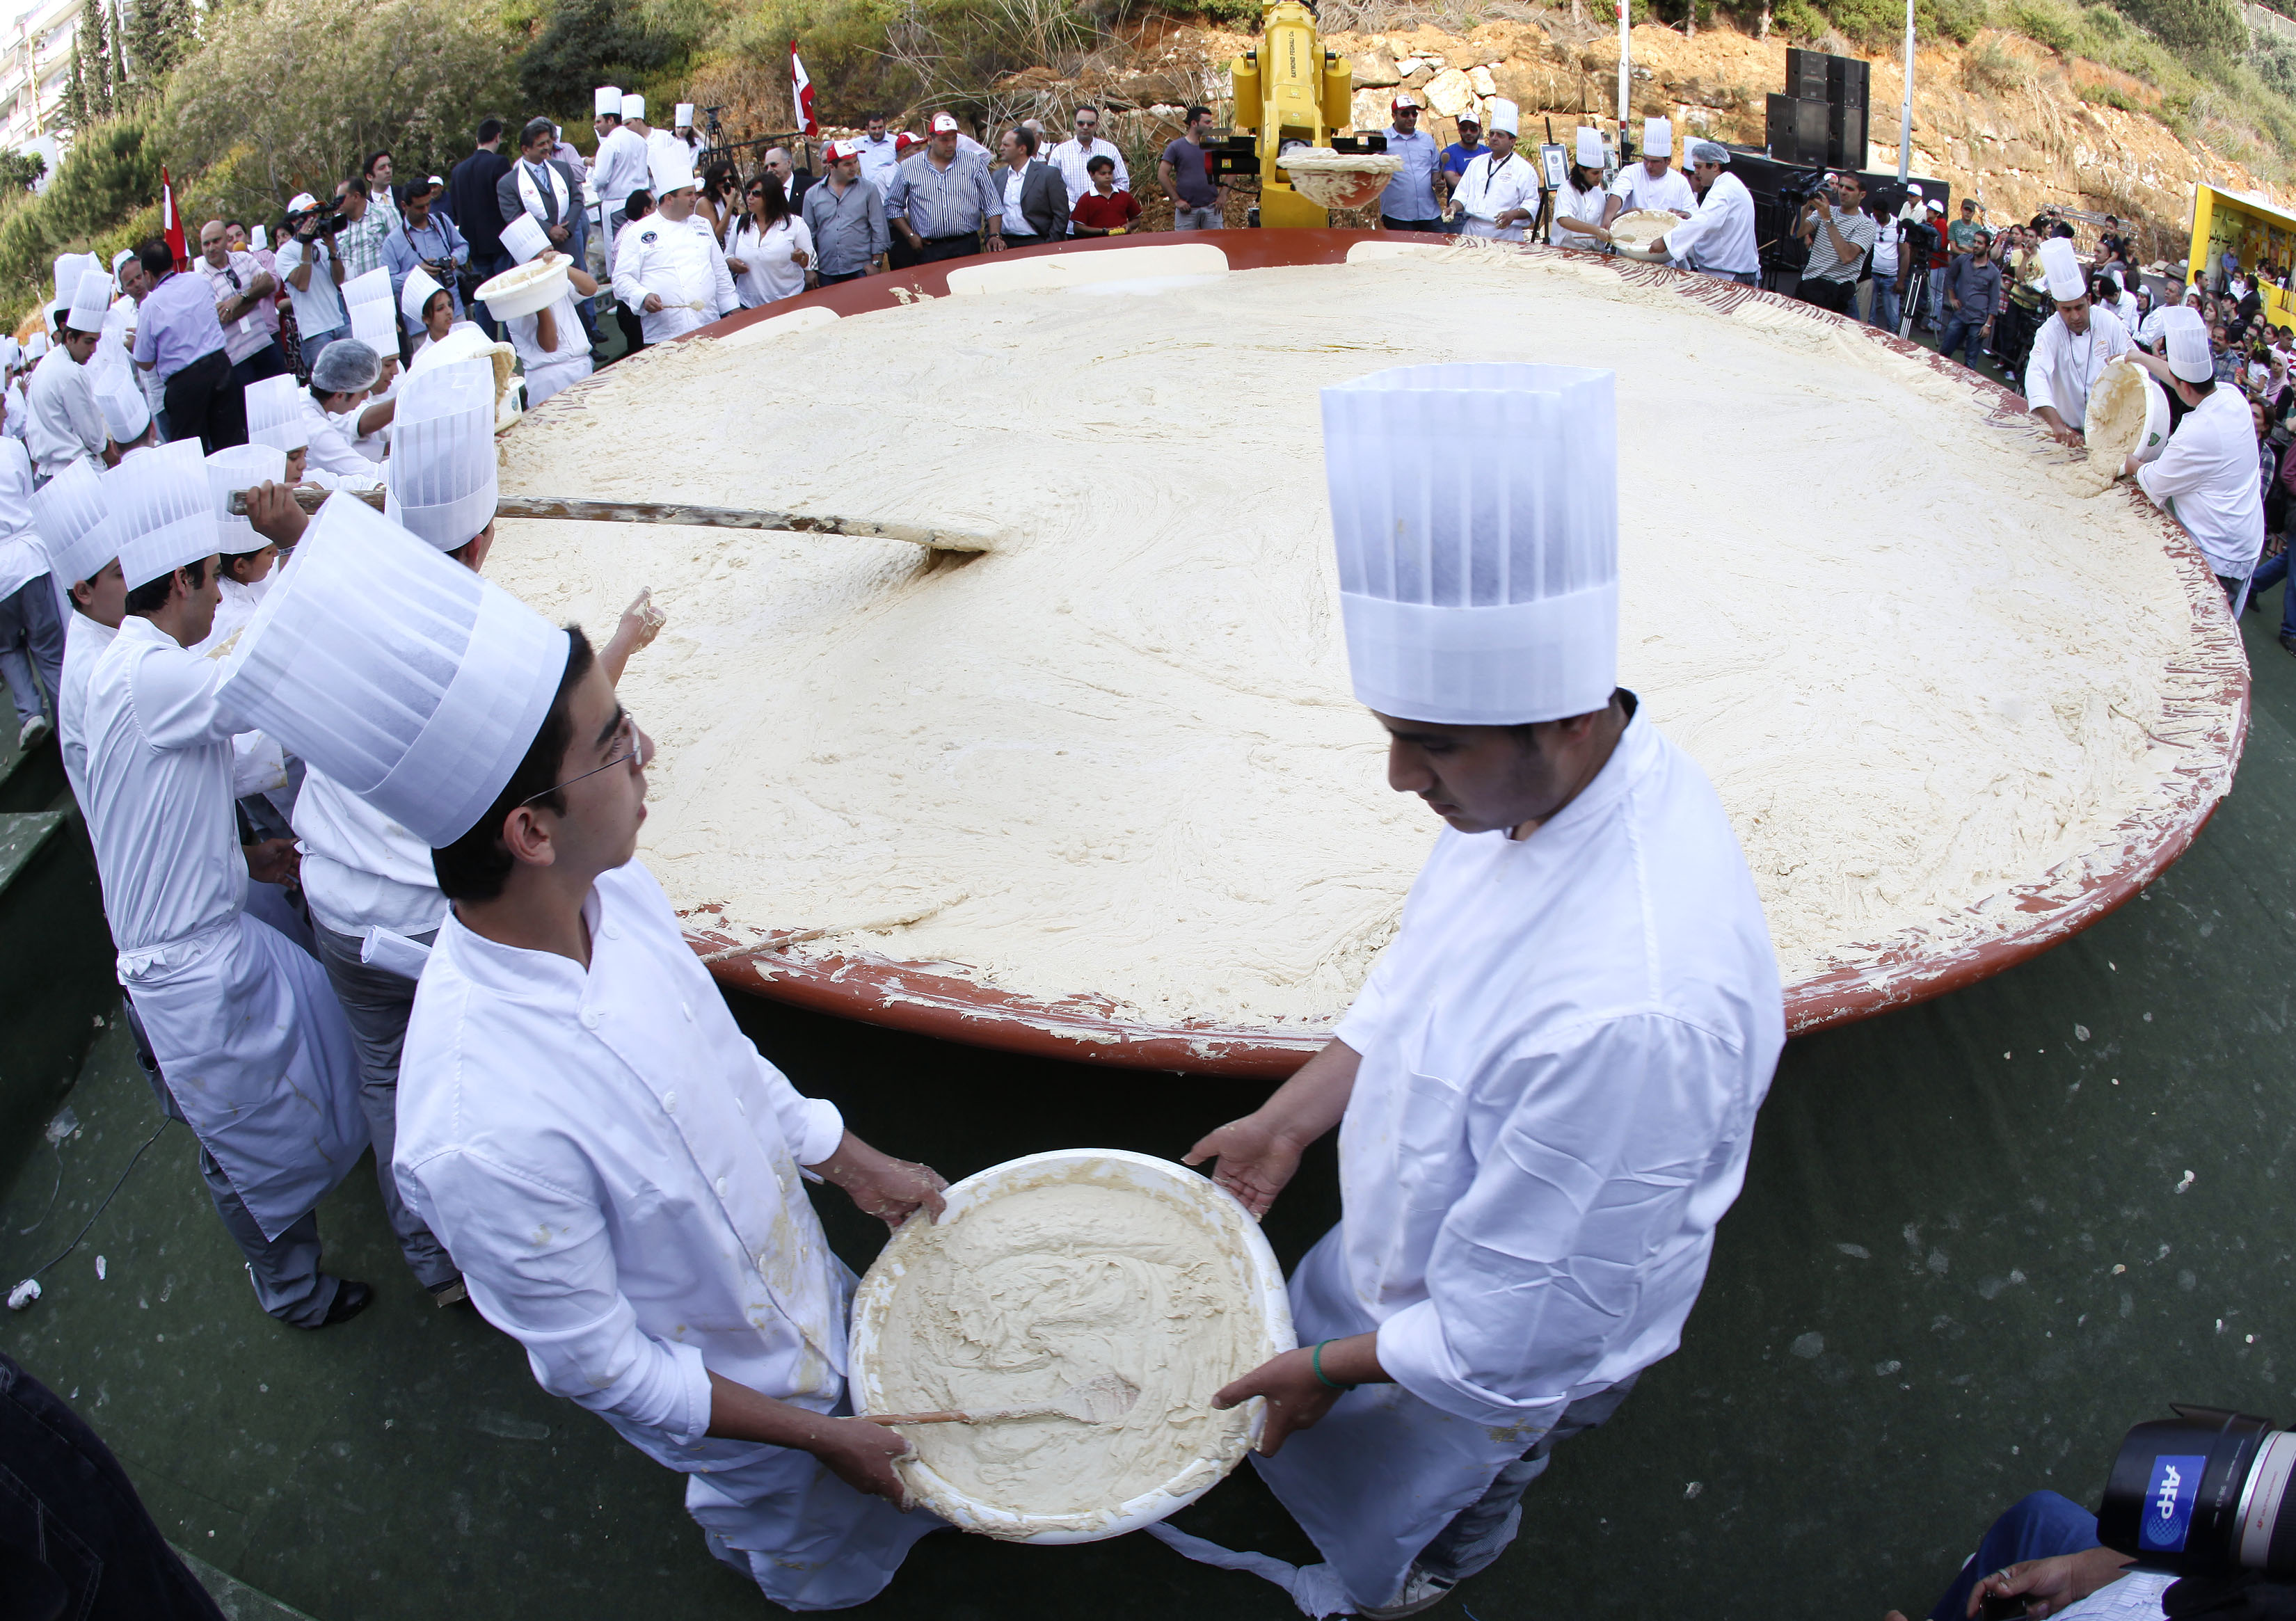 Lebanese chefs work to beat Israel's record for largest bowl of hummus, unaware that now it's all made in Virgnia, anyway